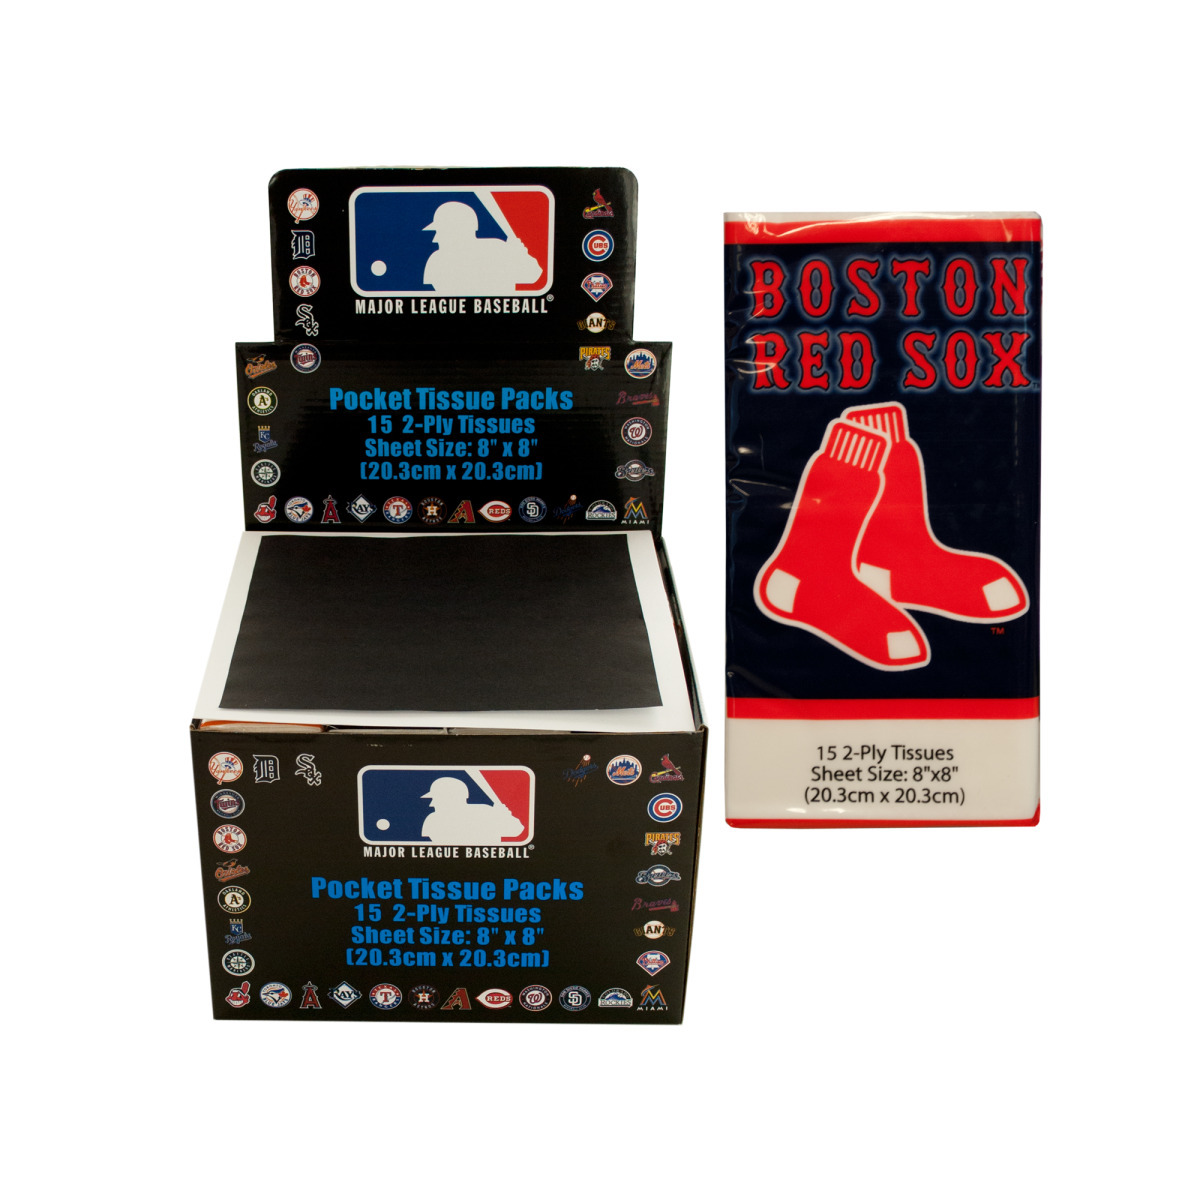 Boston RED SOX Pocket Tissues Countertop Display [1944467]